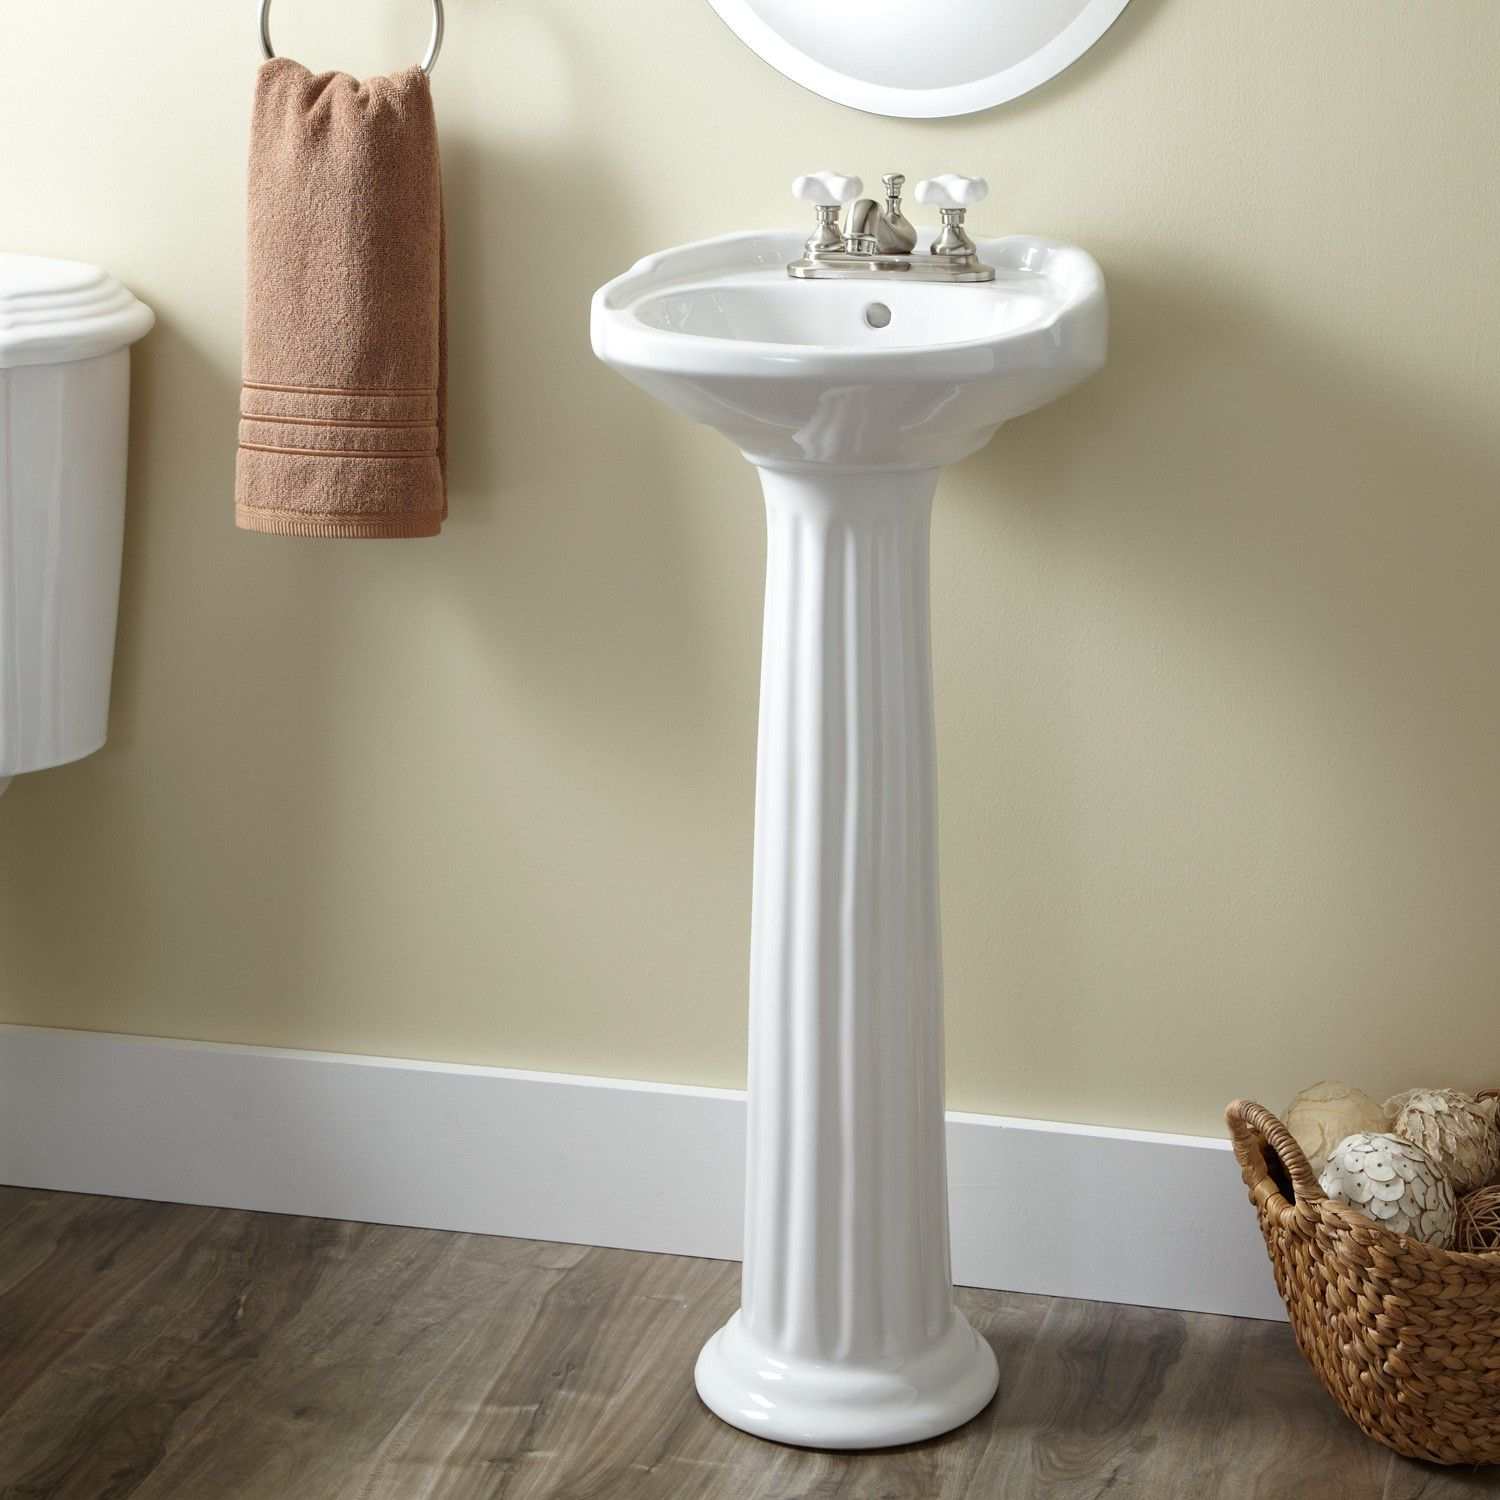 pedestal sink or vanity in small bathroom%0A      Tiny Sinks for Small Bathrooms  Best Interior House Paint Check more  at http